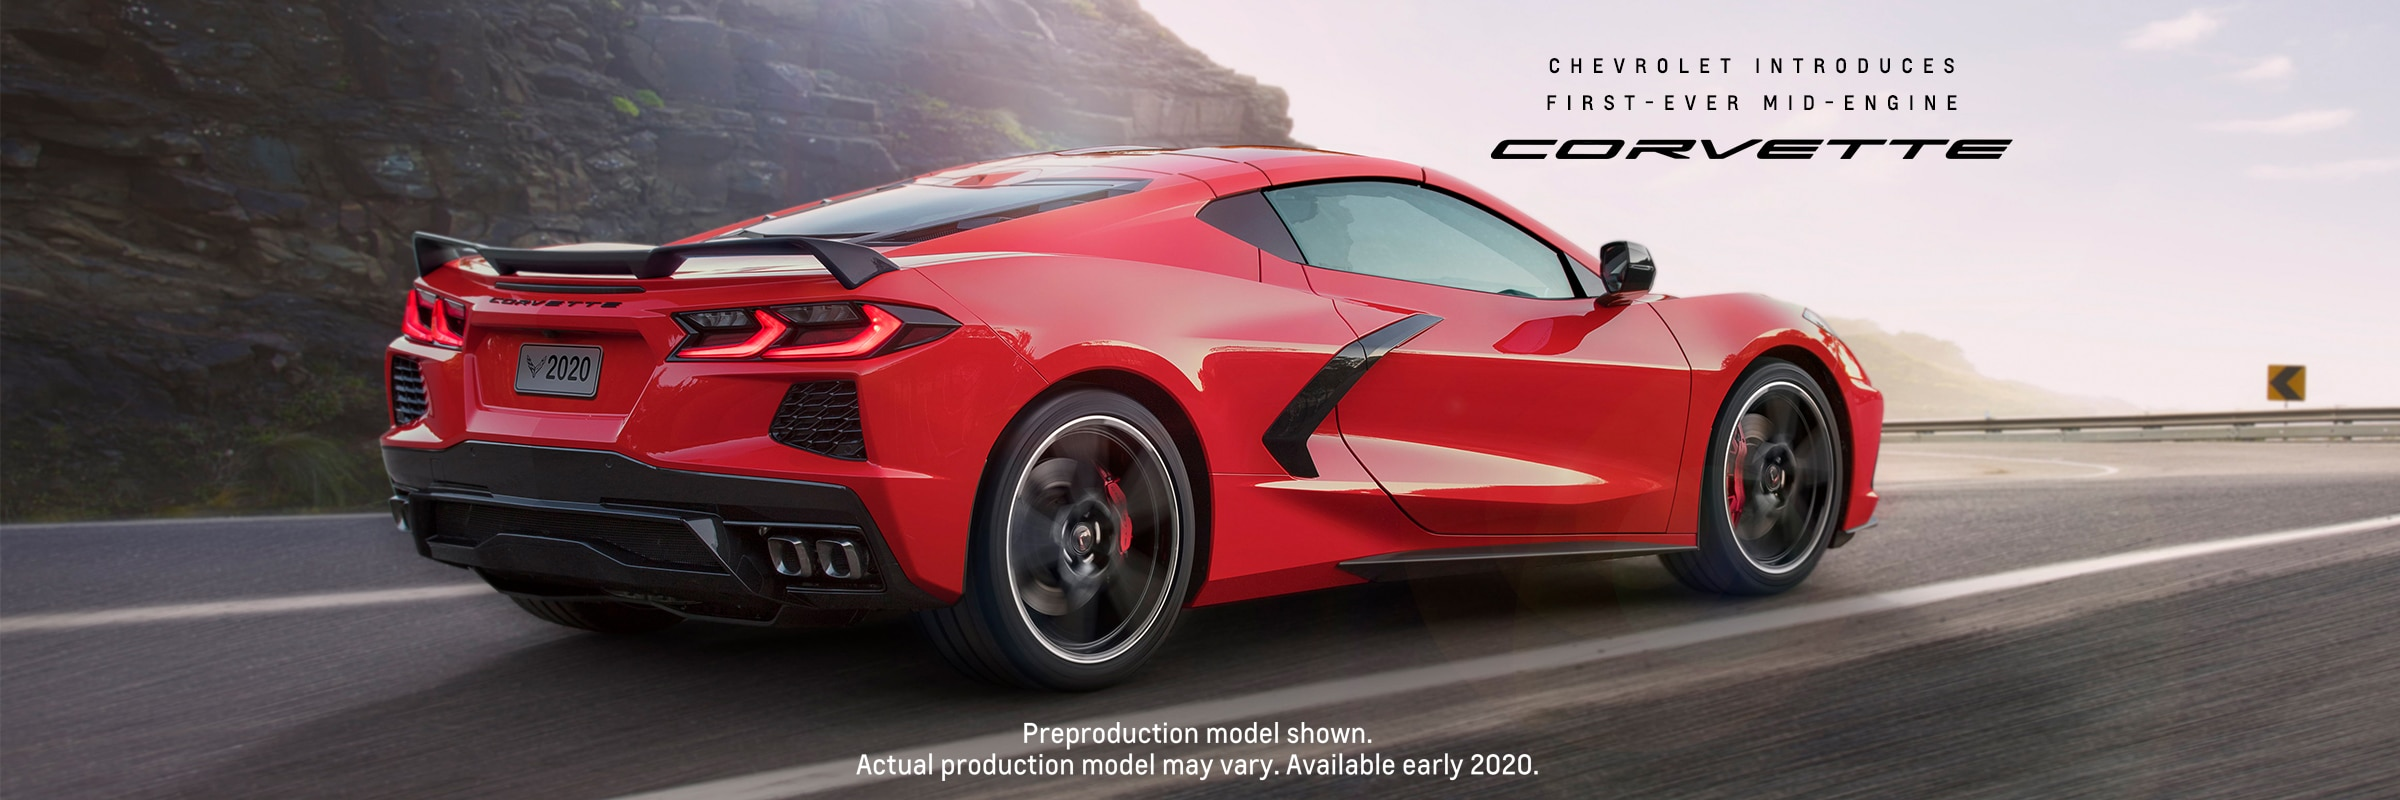 Chevrolet Introduces First Ever Mid Engine Corvette